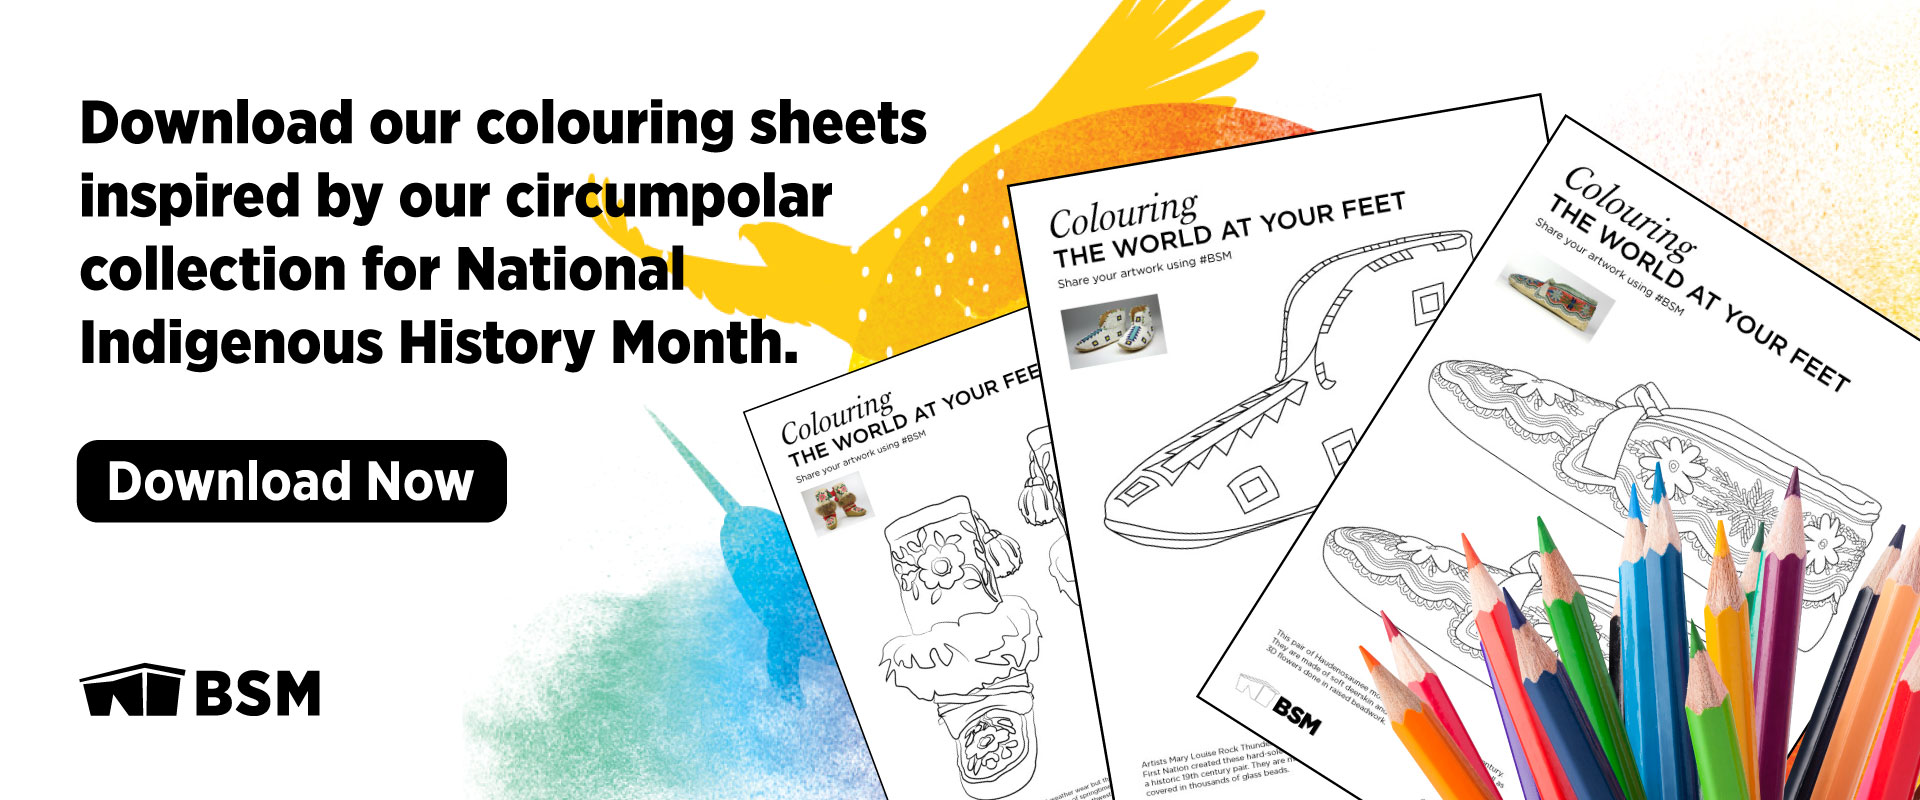 Celebrate National Indigenous History Month with colouring sheets inspired by our collection.